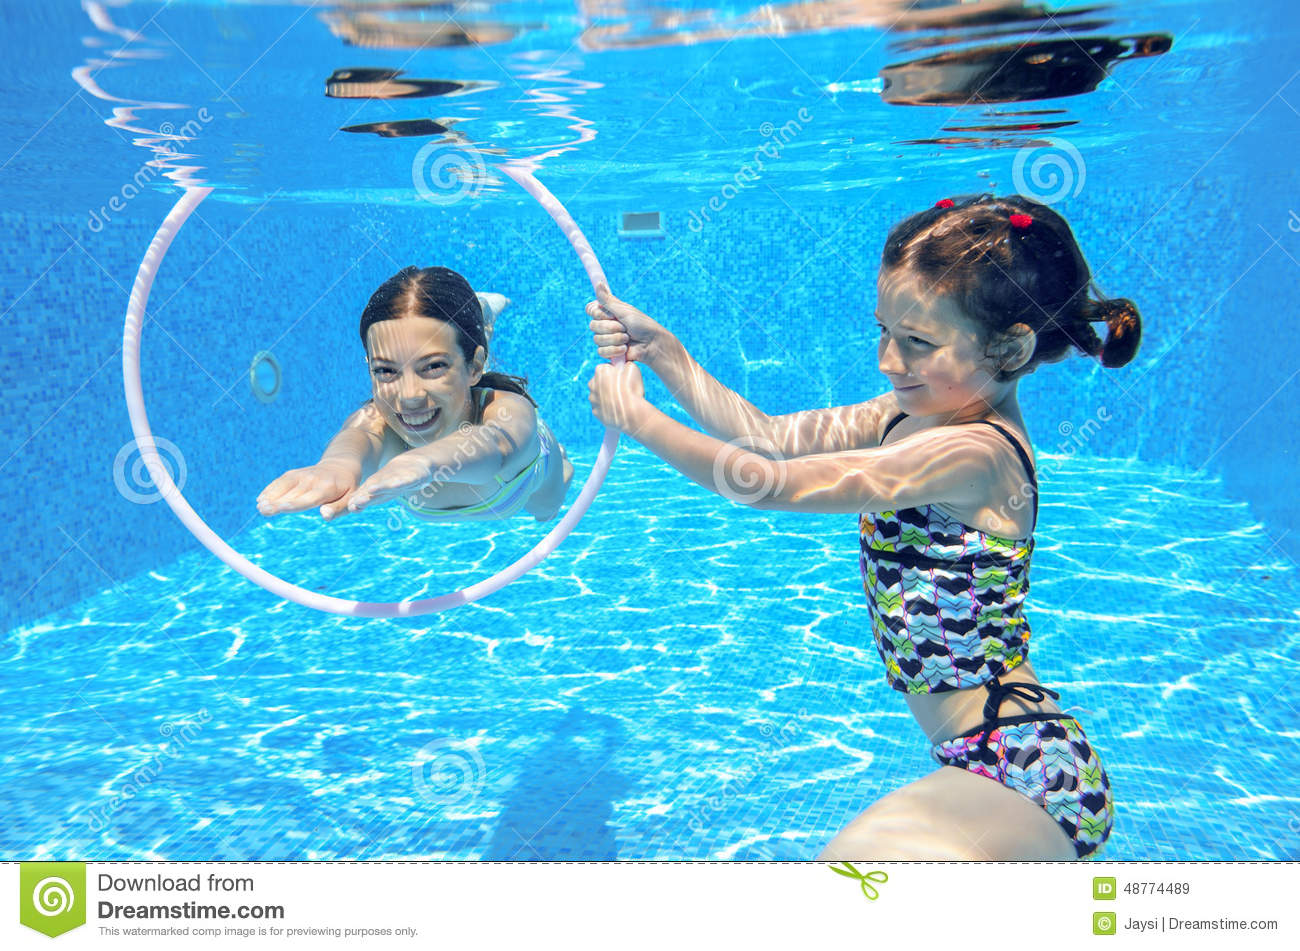 Kids Swimming Underwater kids swim in pool underwater stock photo - image: 48774489